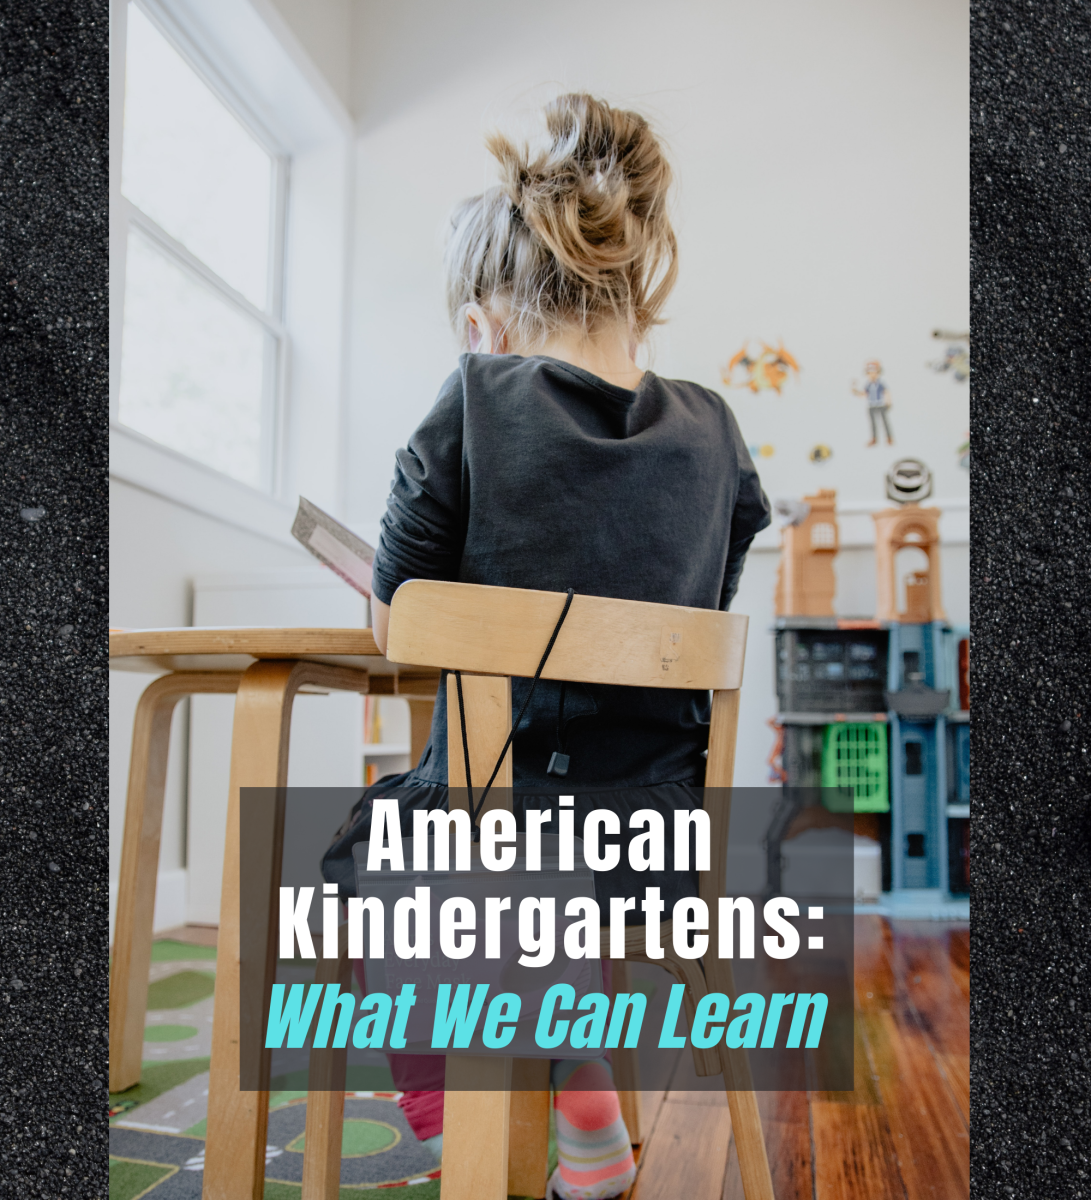 What US kindergartens can learn from other countries.